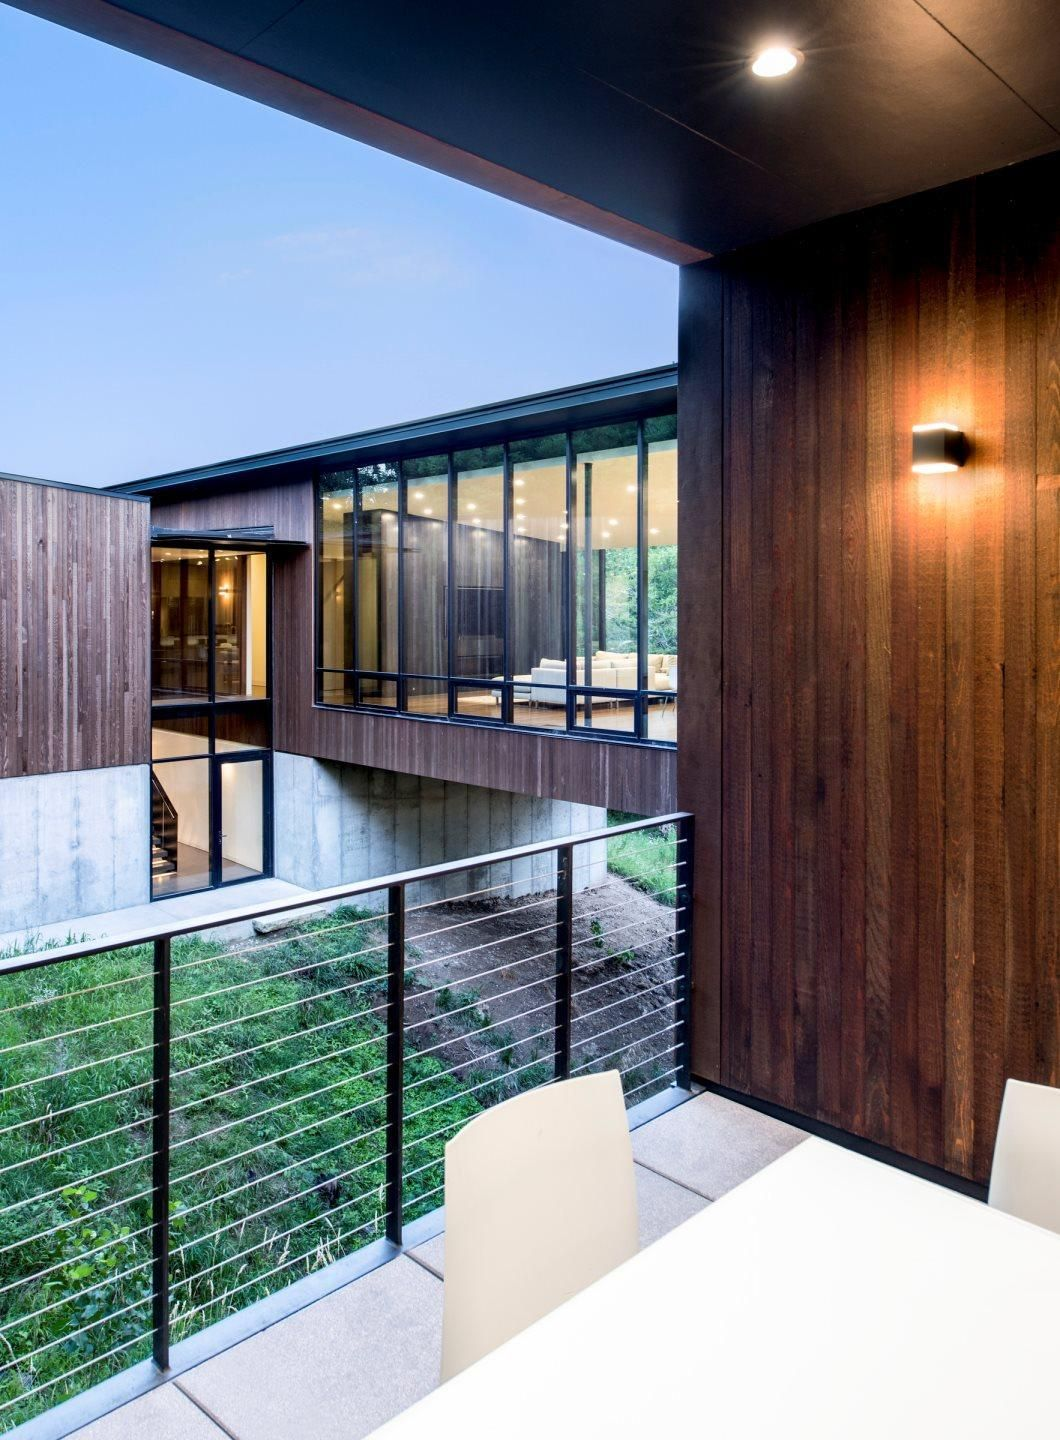 View from exterior dining room courtyard showing natural materials - BNIM #modernhouses #modernrustic #exteriordesign #archdaily #bestarchitecture